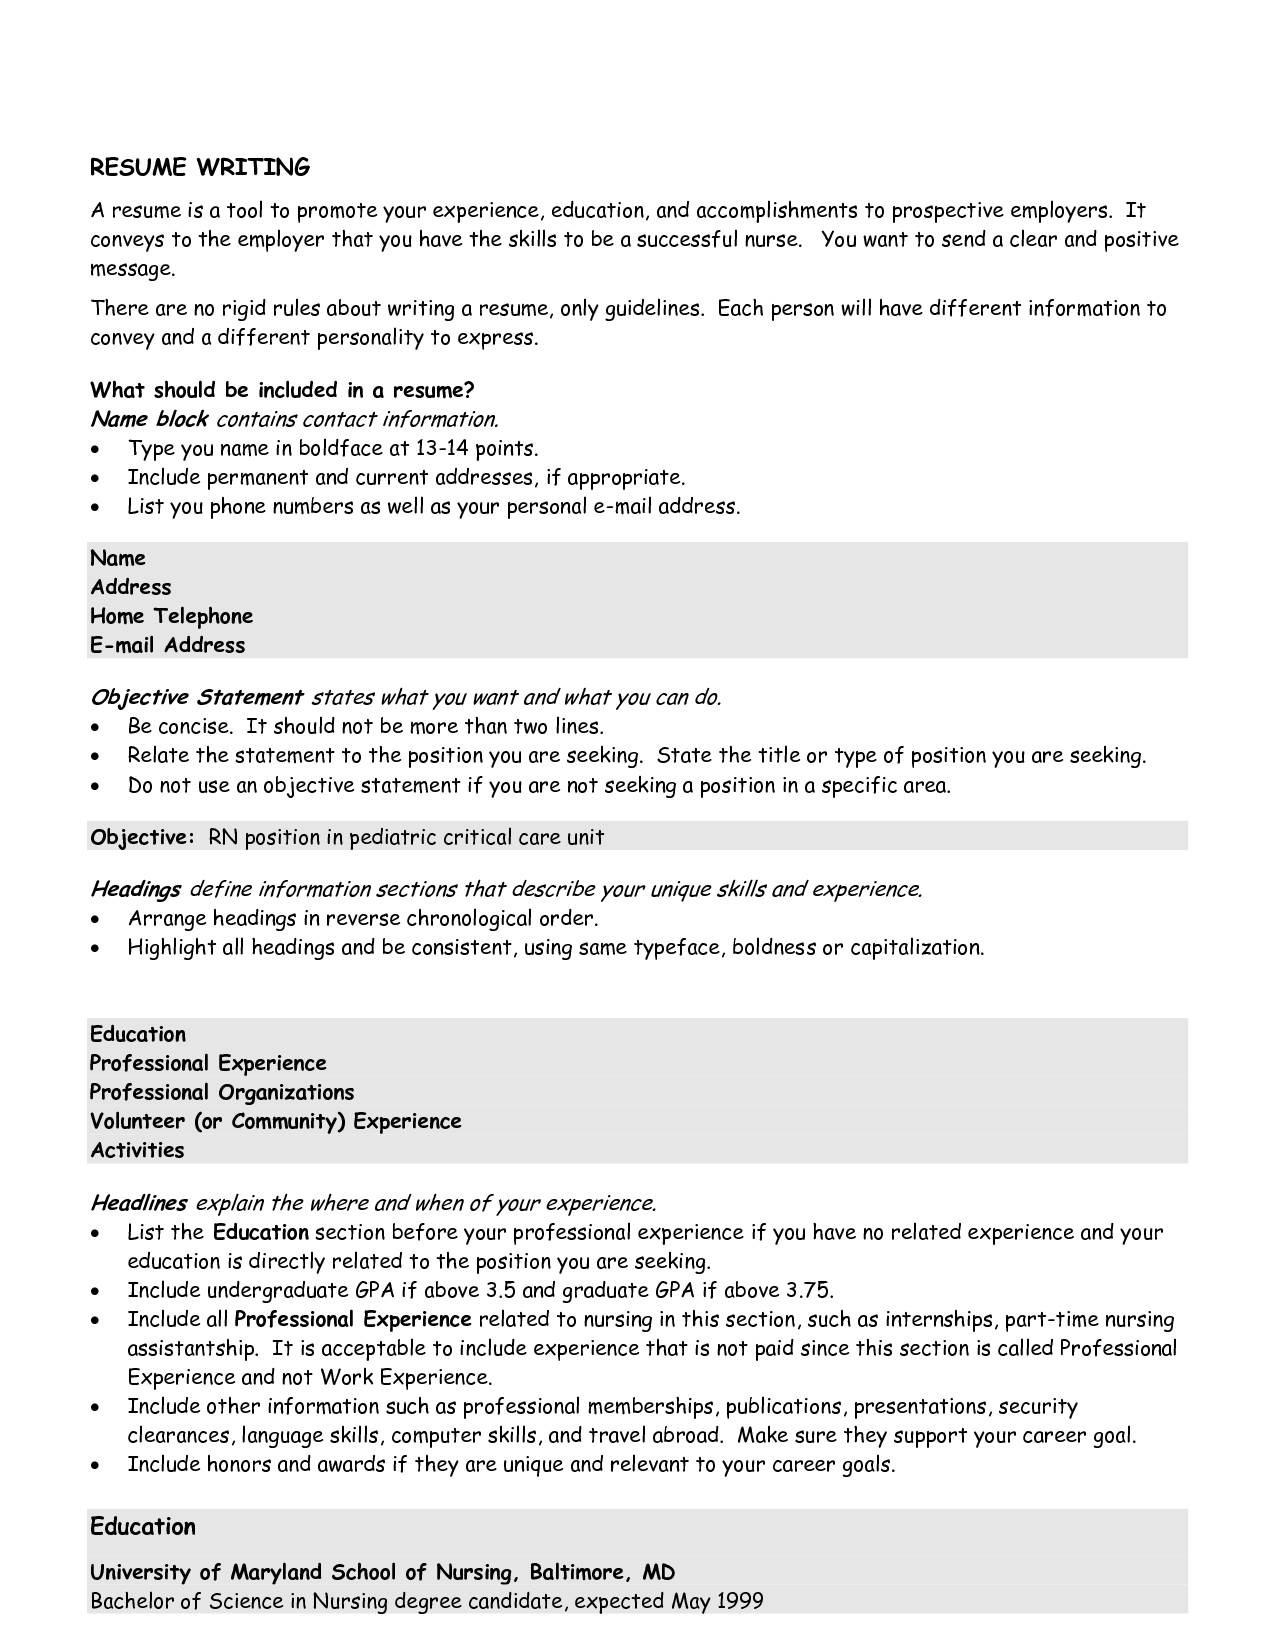 Resume Really Good Resume Objectives catchy resume objectives good objective lines really objectives